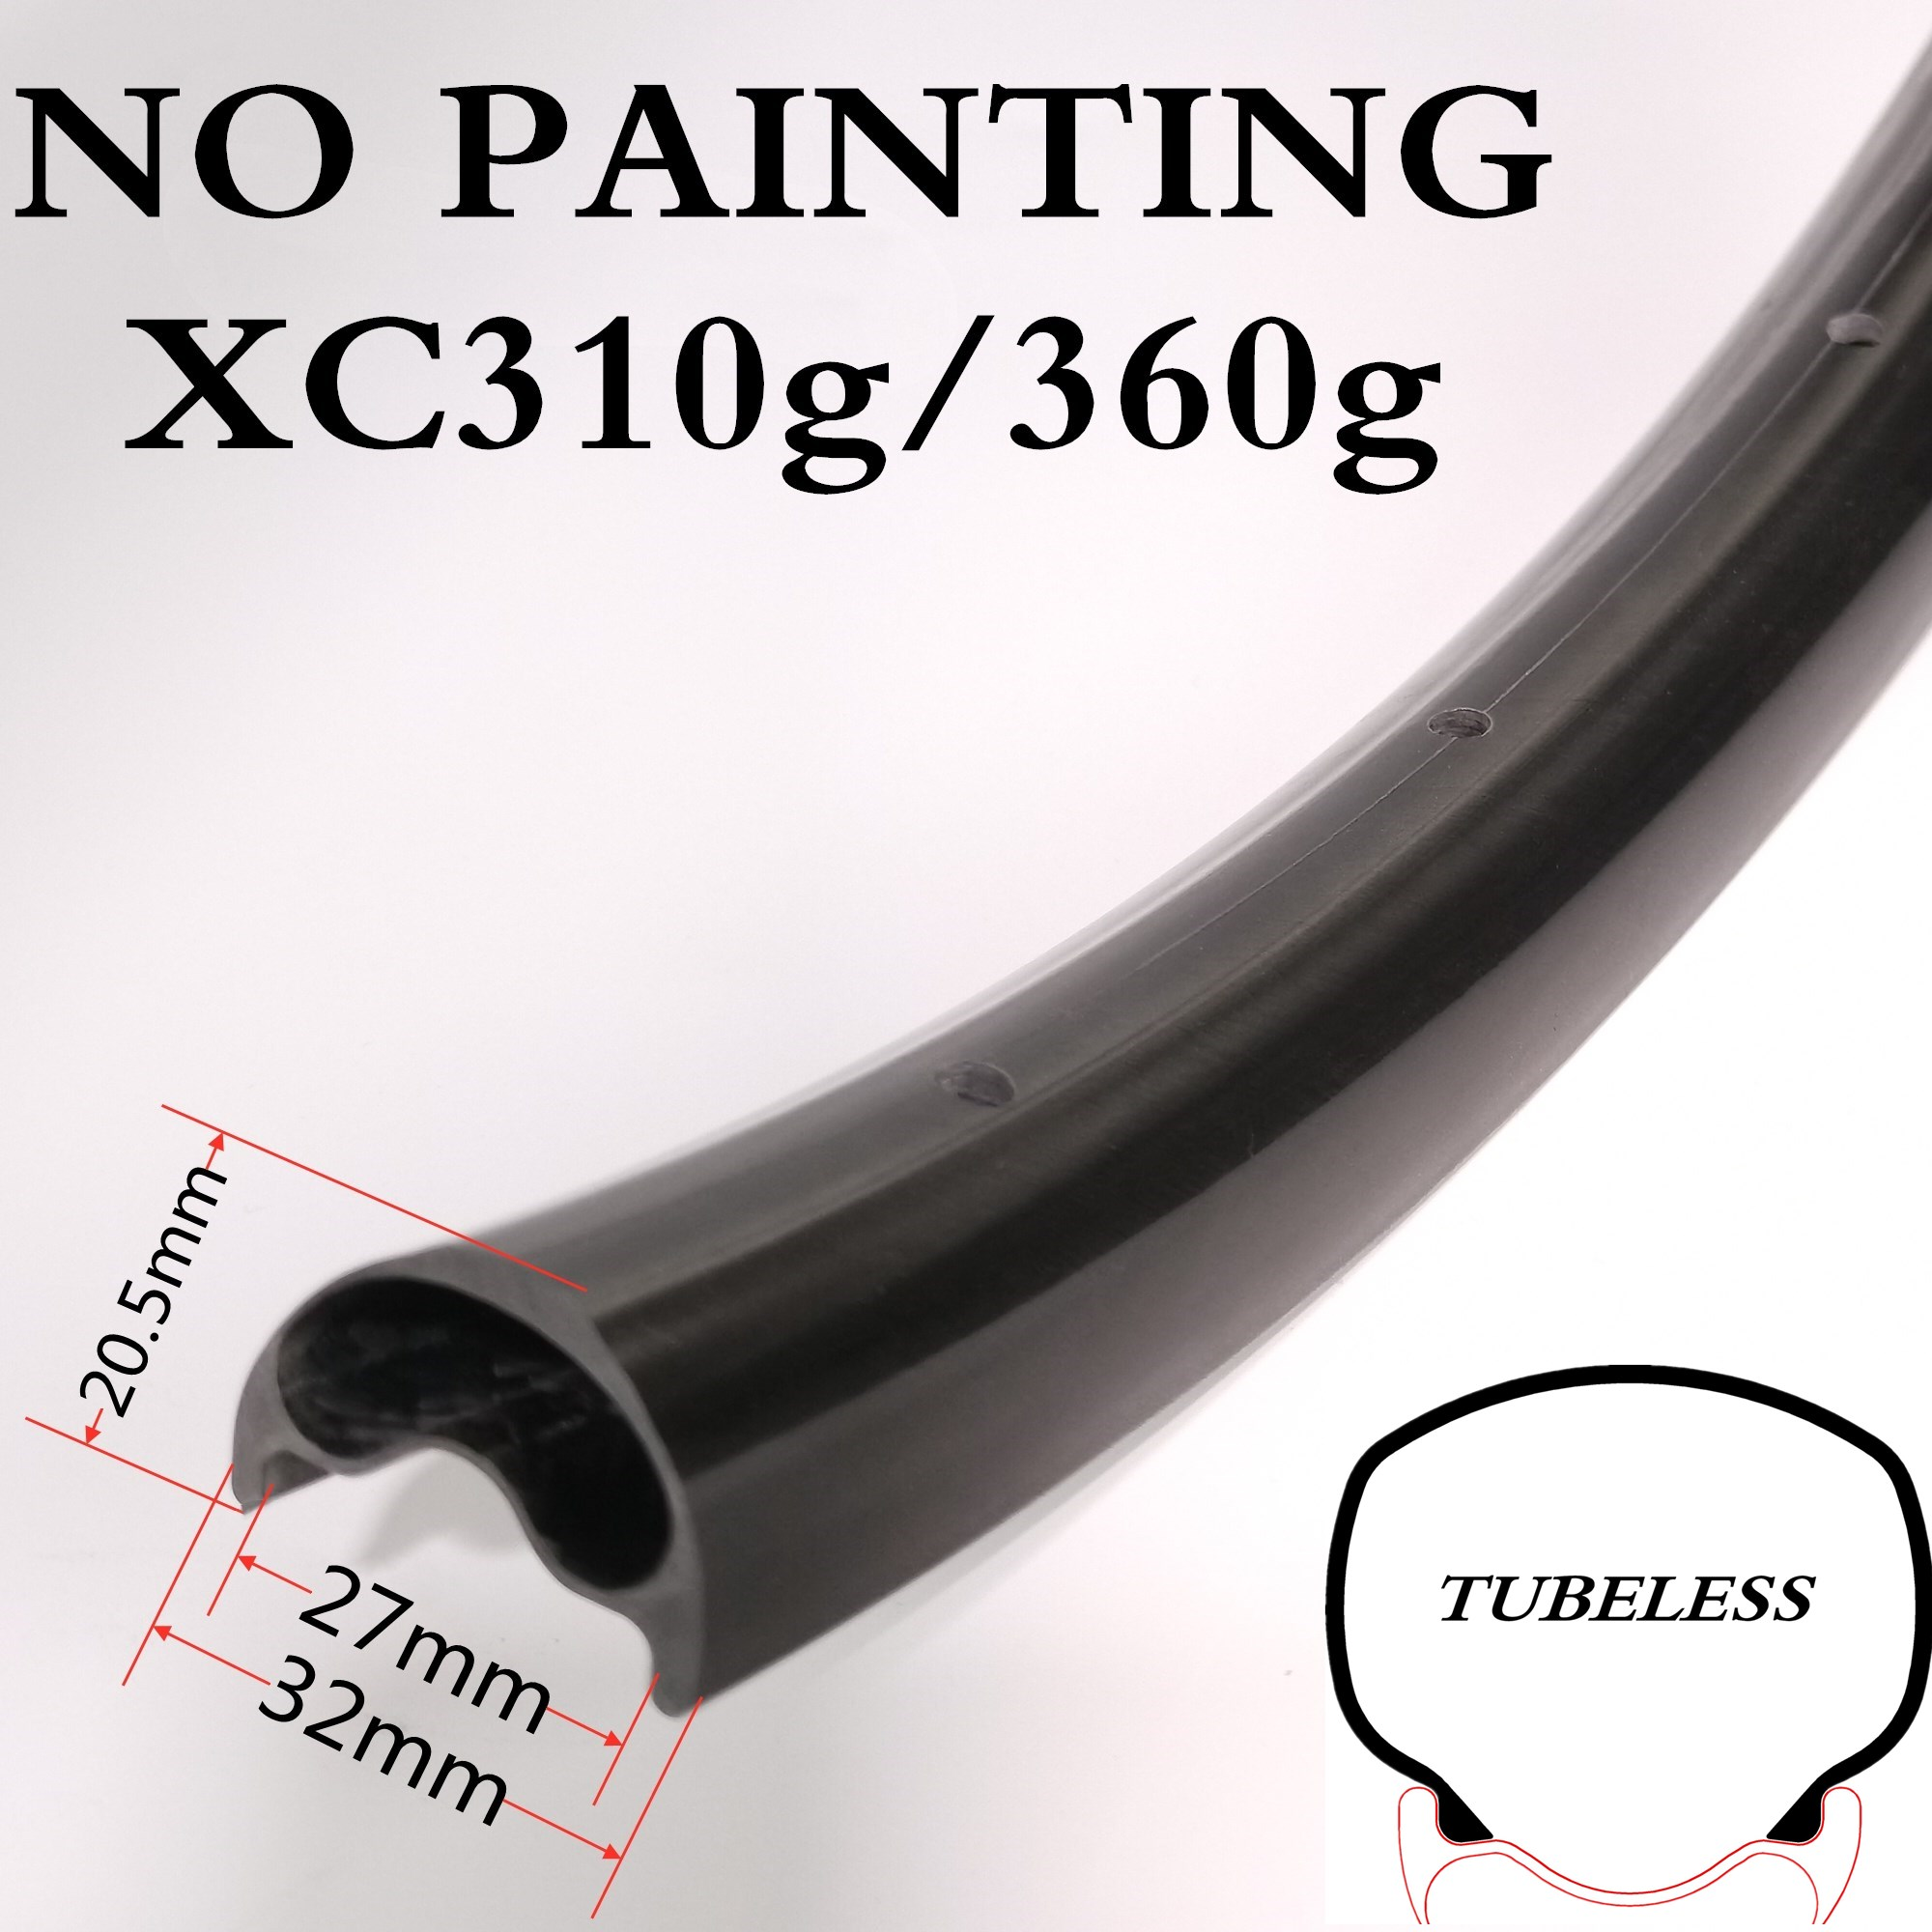 29er XC310g/360g 32mm Width 20.5mm Depth Asymmetry Carbon MTB Mountain Bicycle Tubeless Rim Roue Vtt Lifetime Warranty